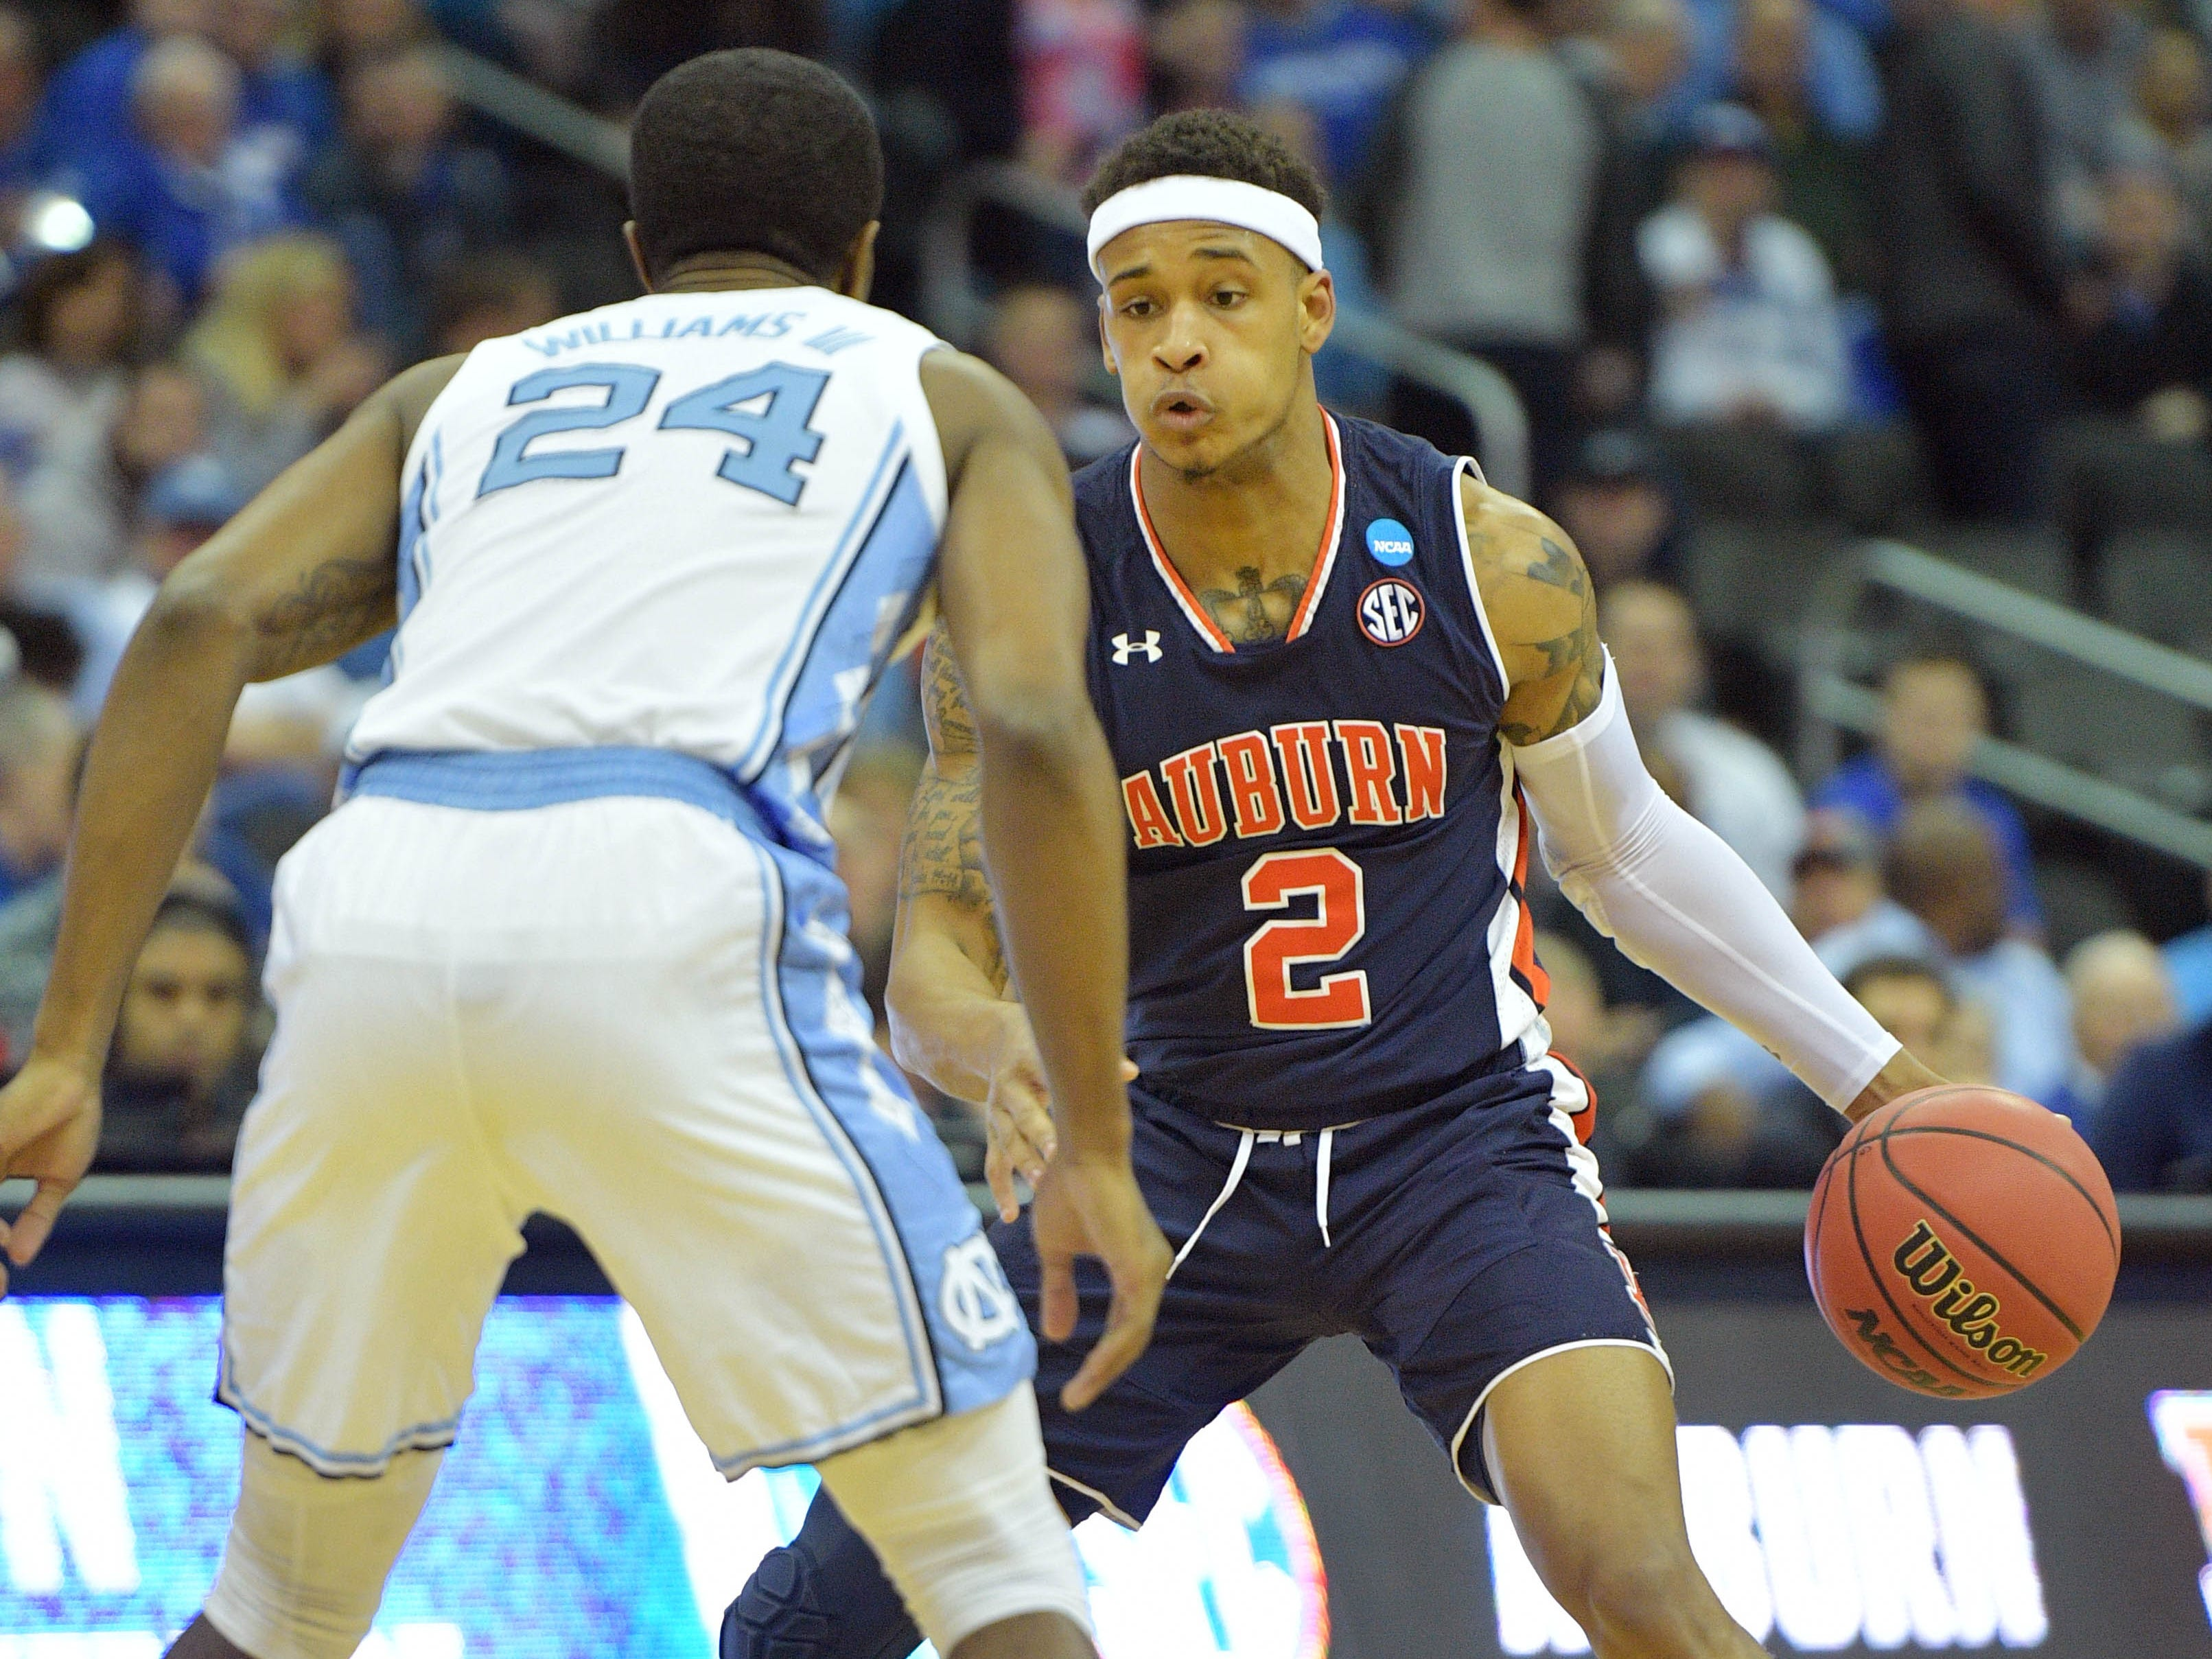 Mar 29, 2019; Kansas City, MO, United States; Auburn Tigers guard Bryce Brown (2) brings the ball up against North Carolina Tar Heels guard Kenny Williams (24) during the first half in the semifinals of the midwest regional of the 2019 NCAA Tournament at Sprint Center. Mandatory Credit: Denny Medley-USA TODAY Sports